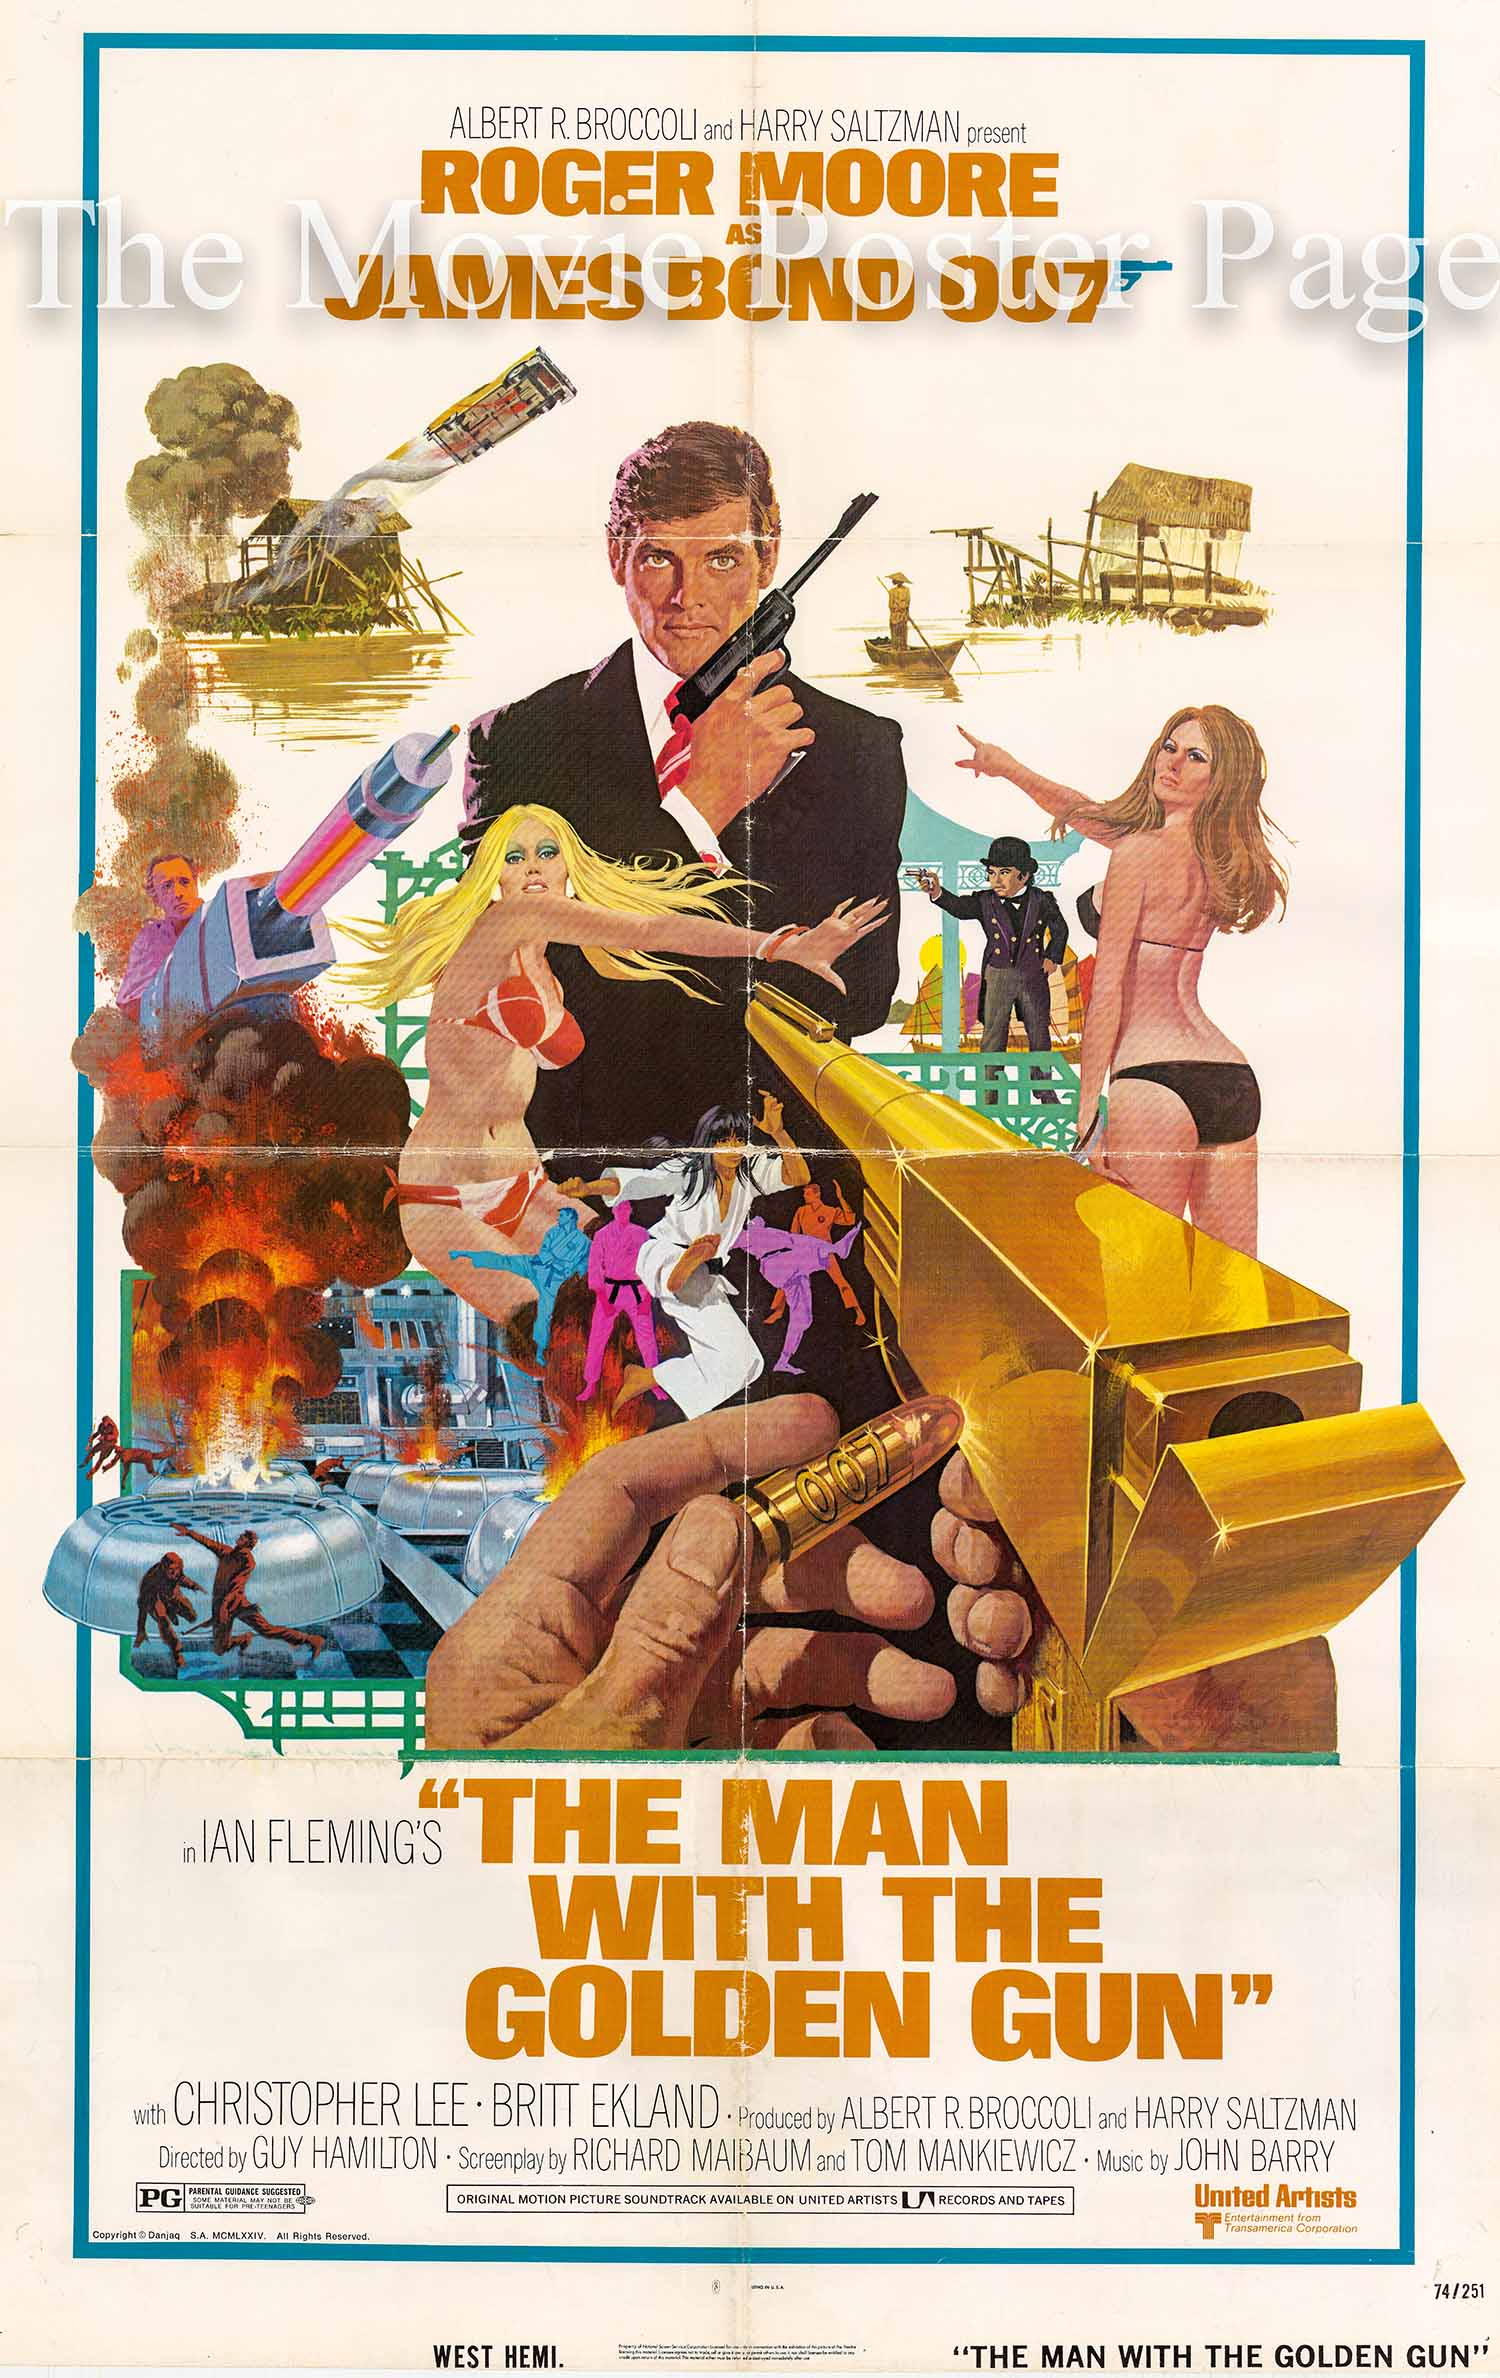 Pictured is a US promotional one-sheet poster for a 1980s rerelease of the 1974 Guy Hamilton film The Man with the Golden Gun starring Roger Moore.